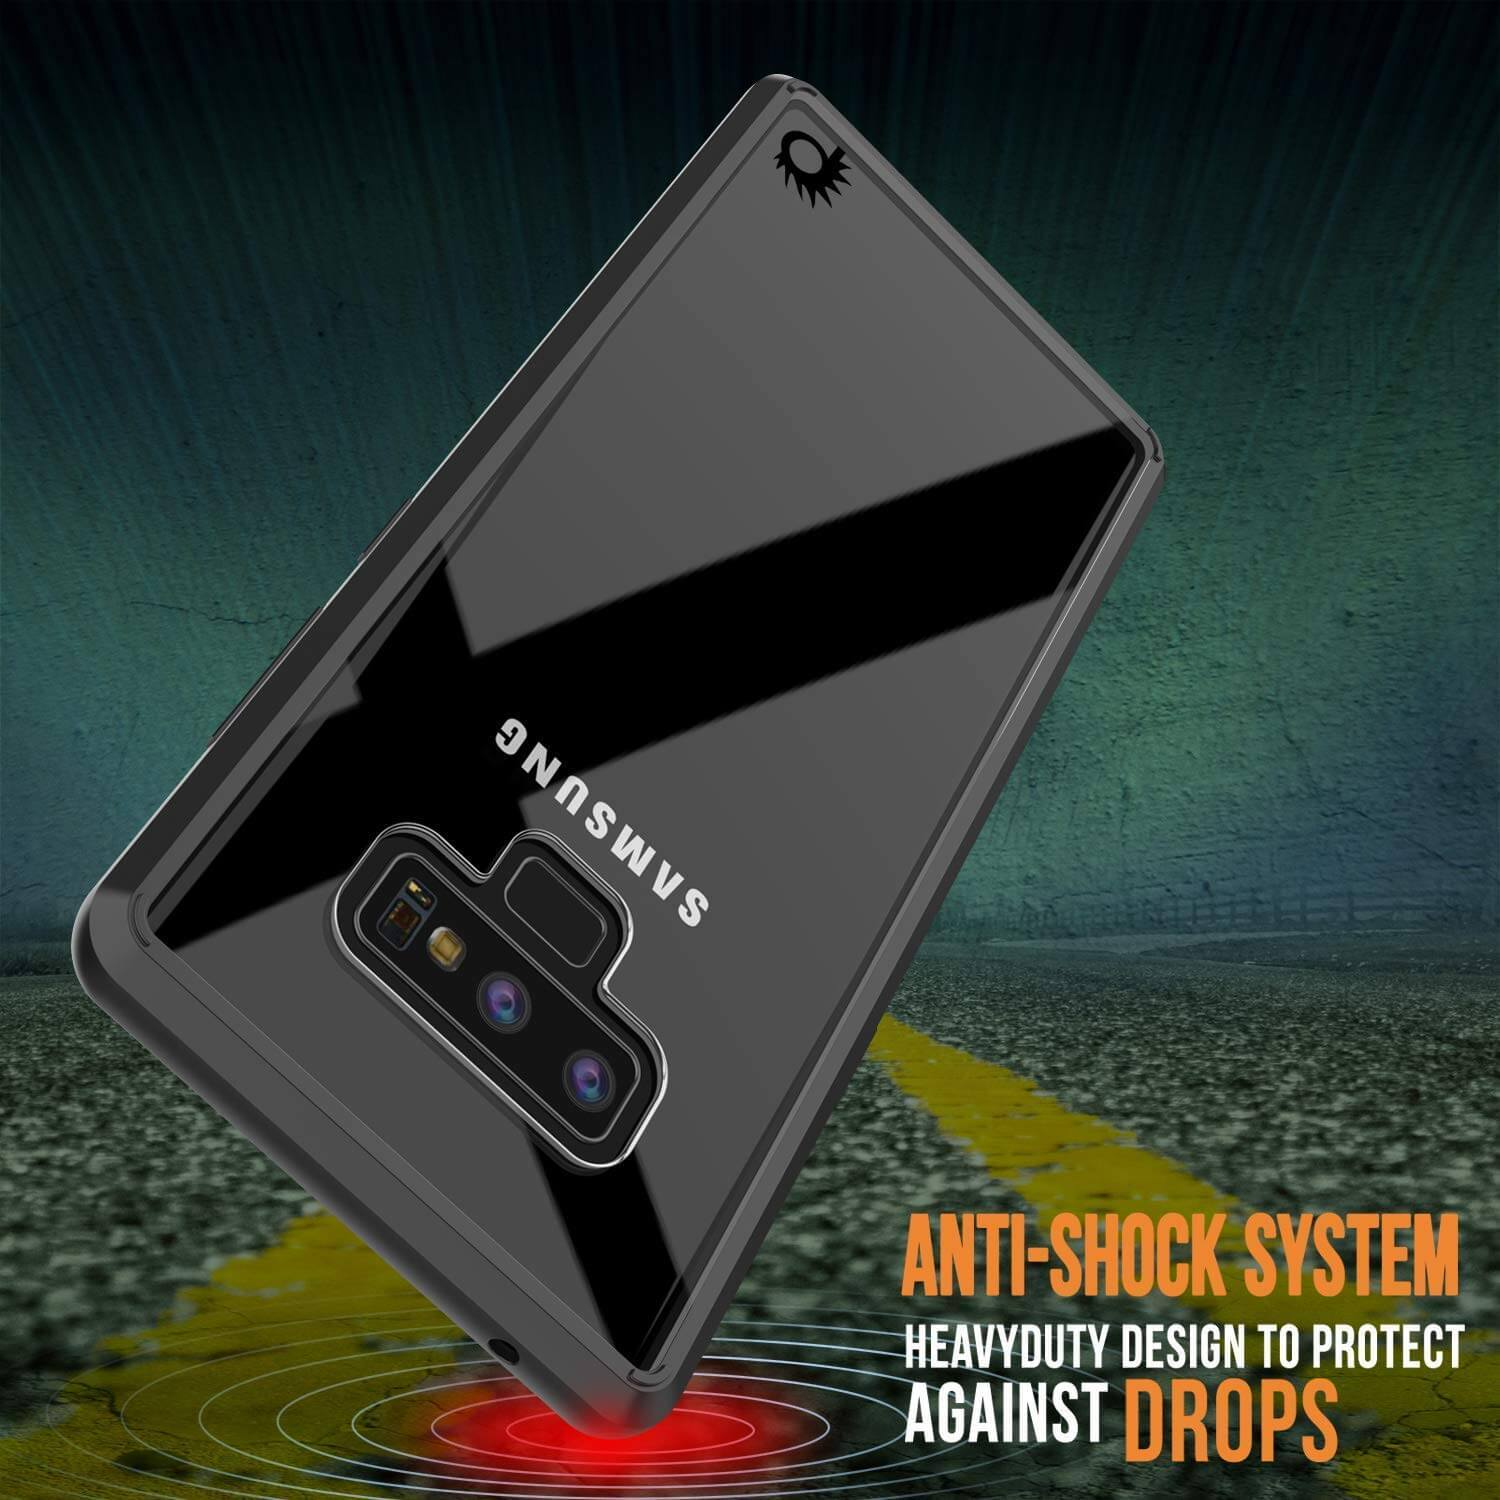 Galaxy Note 9 Case, PUNKcase [LUCID 2.0 Series] [Slim Fit] Armor Cover W/Integrated Anti-Shock System [Black] - PunkCase NZ